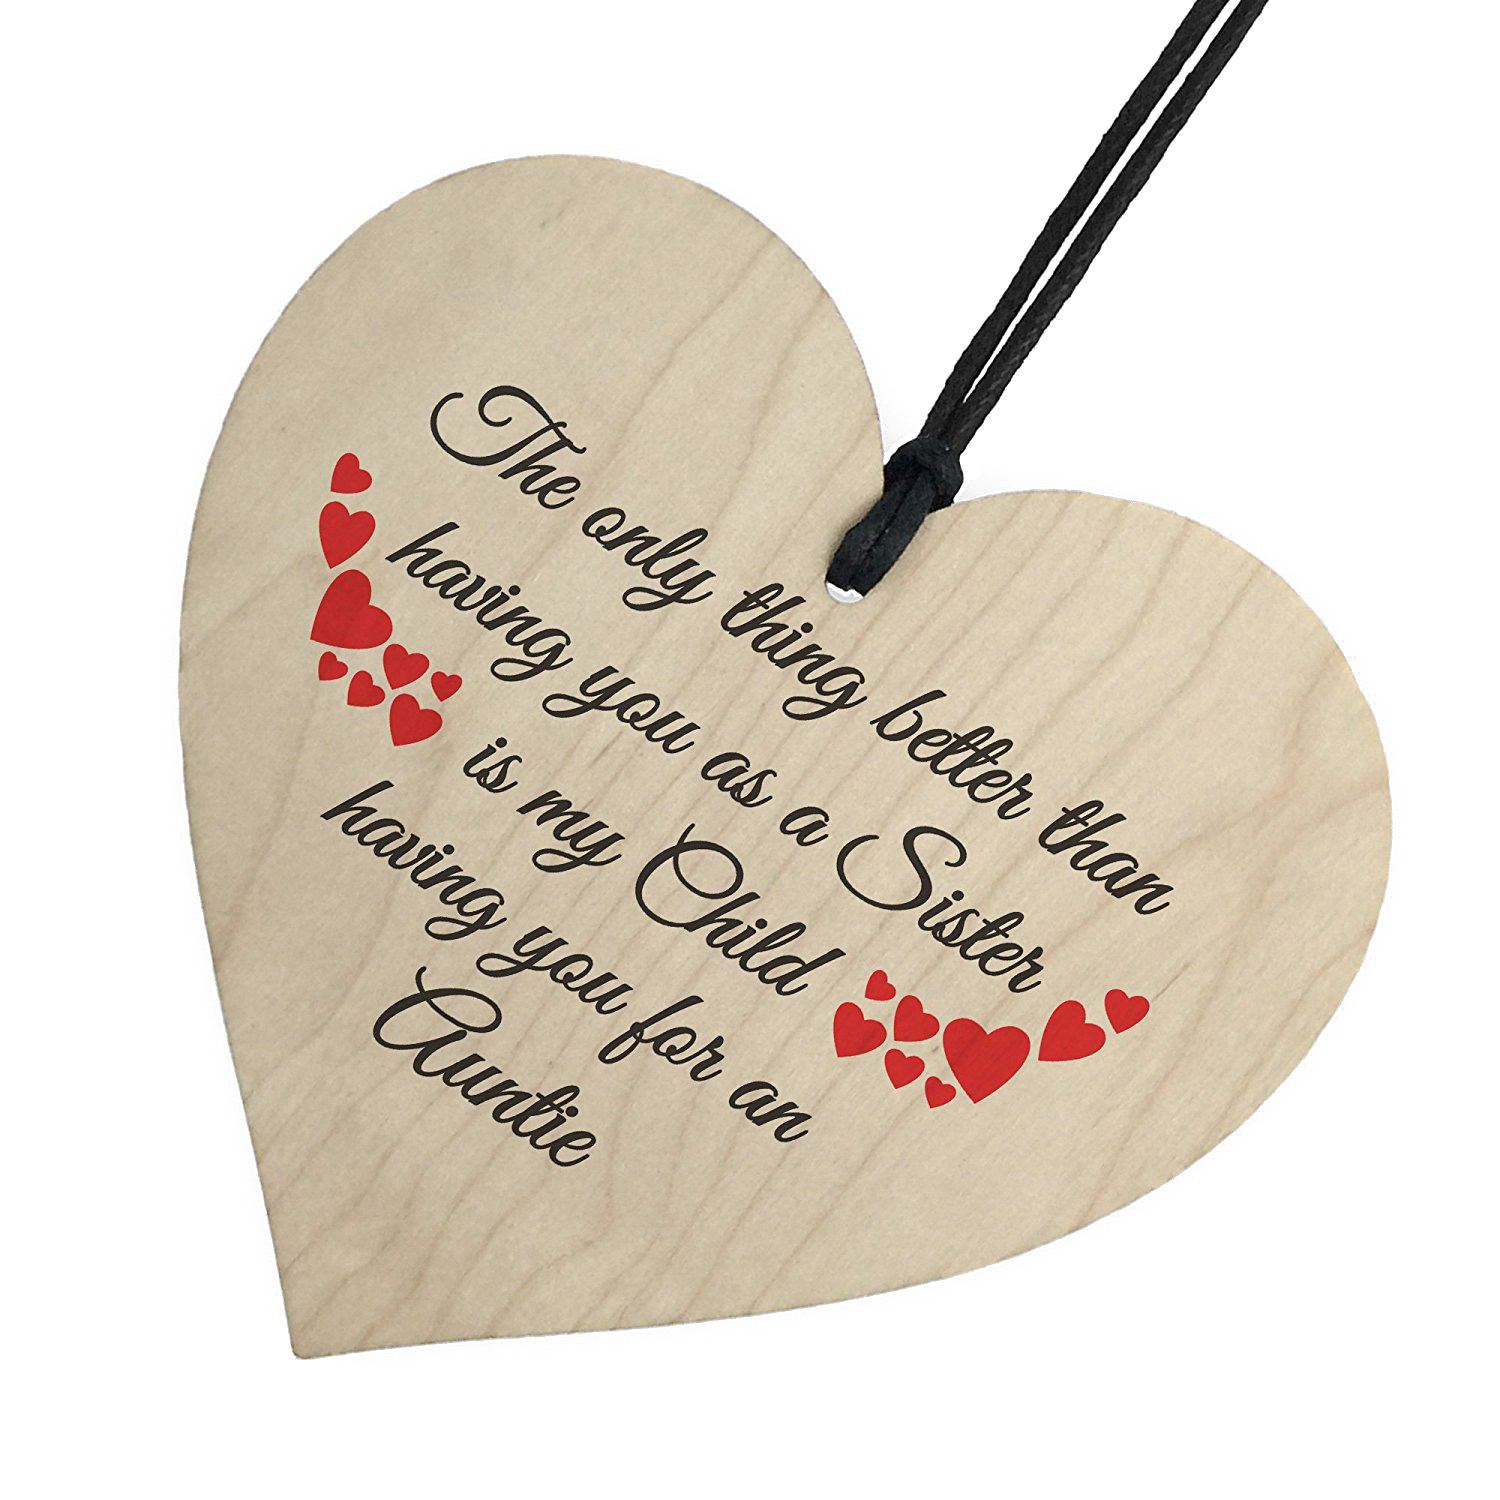 HOT SALE SISTER Child Having You As Auntie Gift Wooden Hanging Heart Christmas Plaque Aunt Birthday Gift New